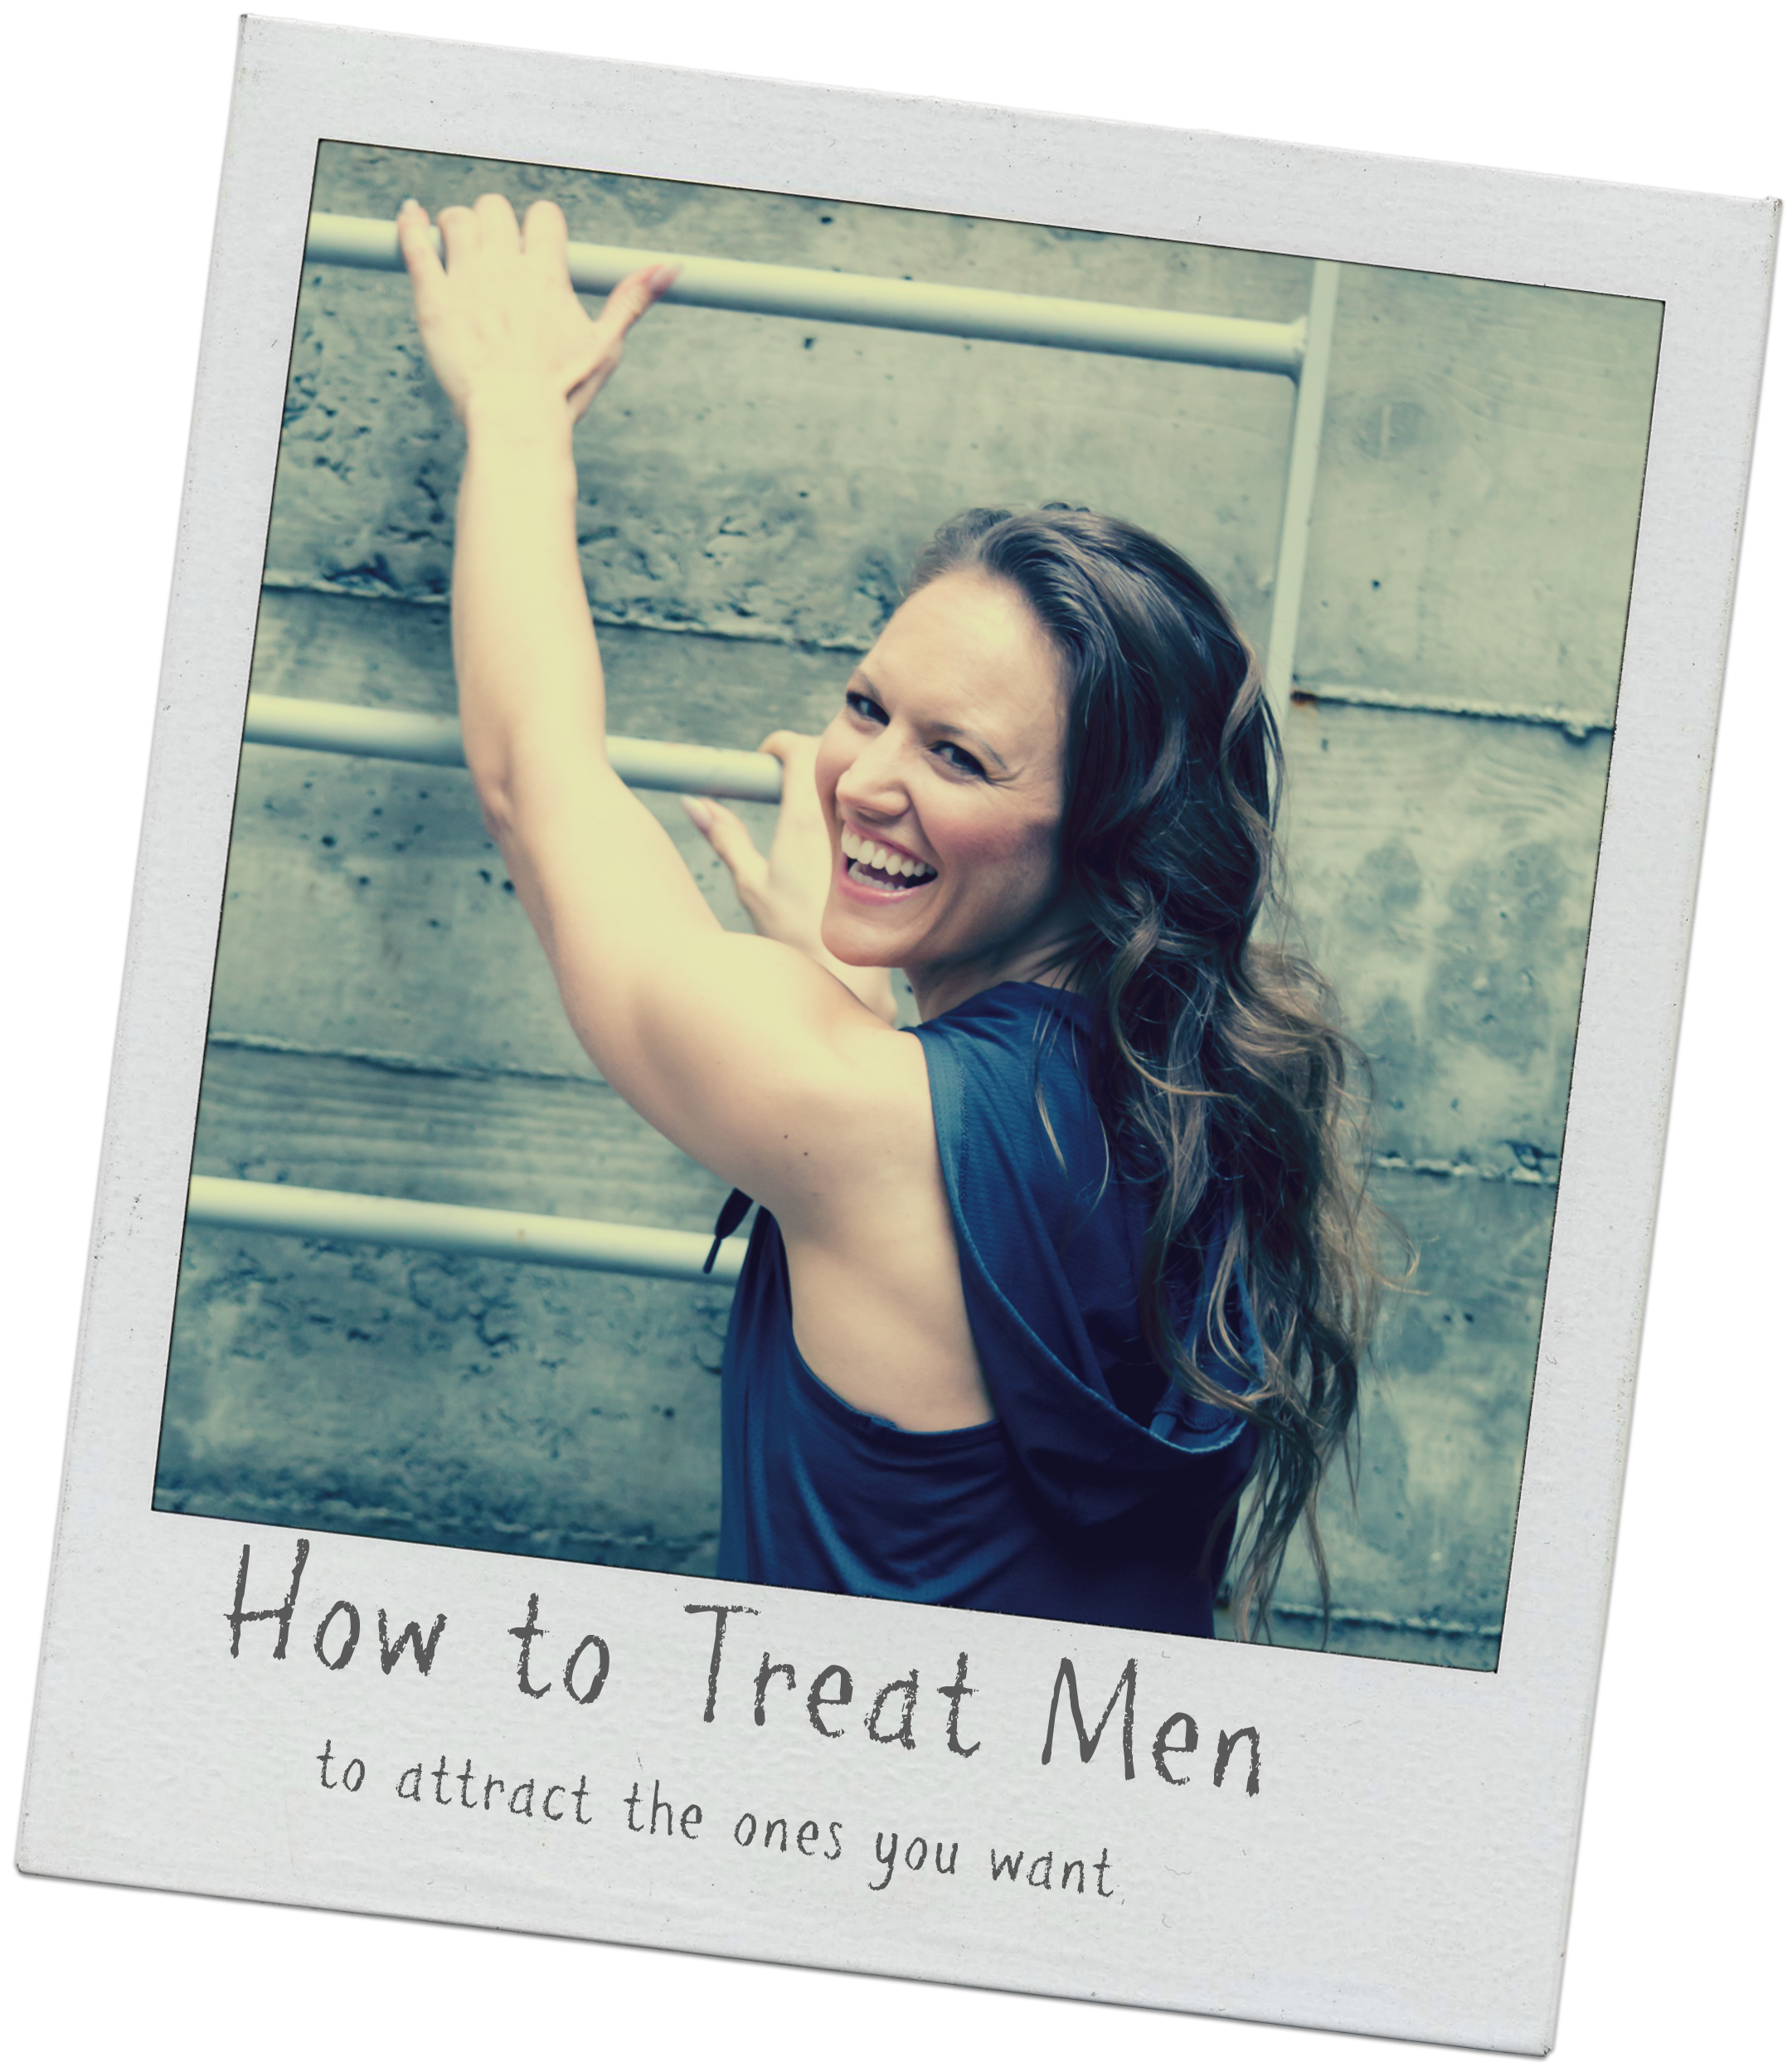 The the process in how I changed the way I interacted with men that changed my dating Life the most